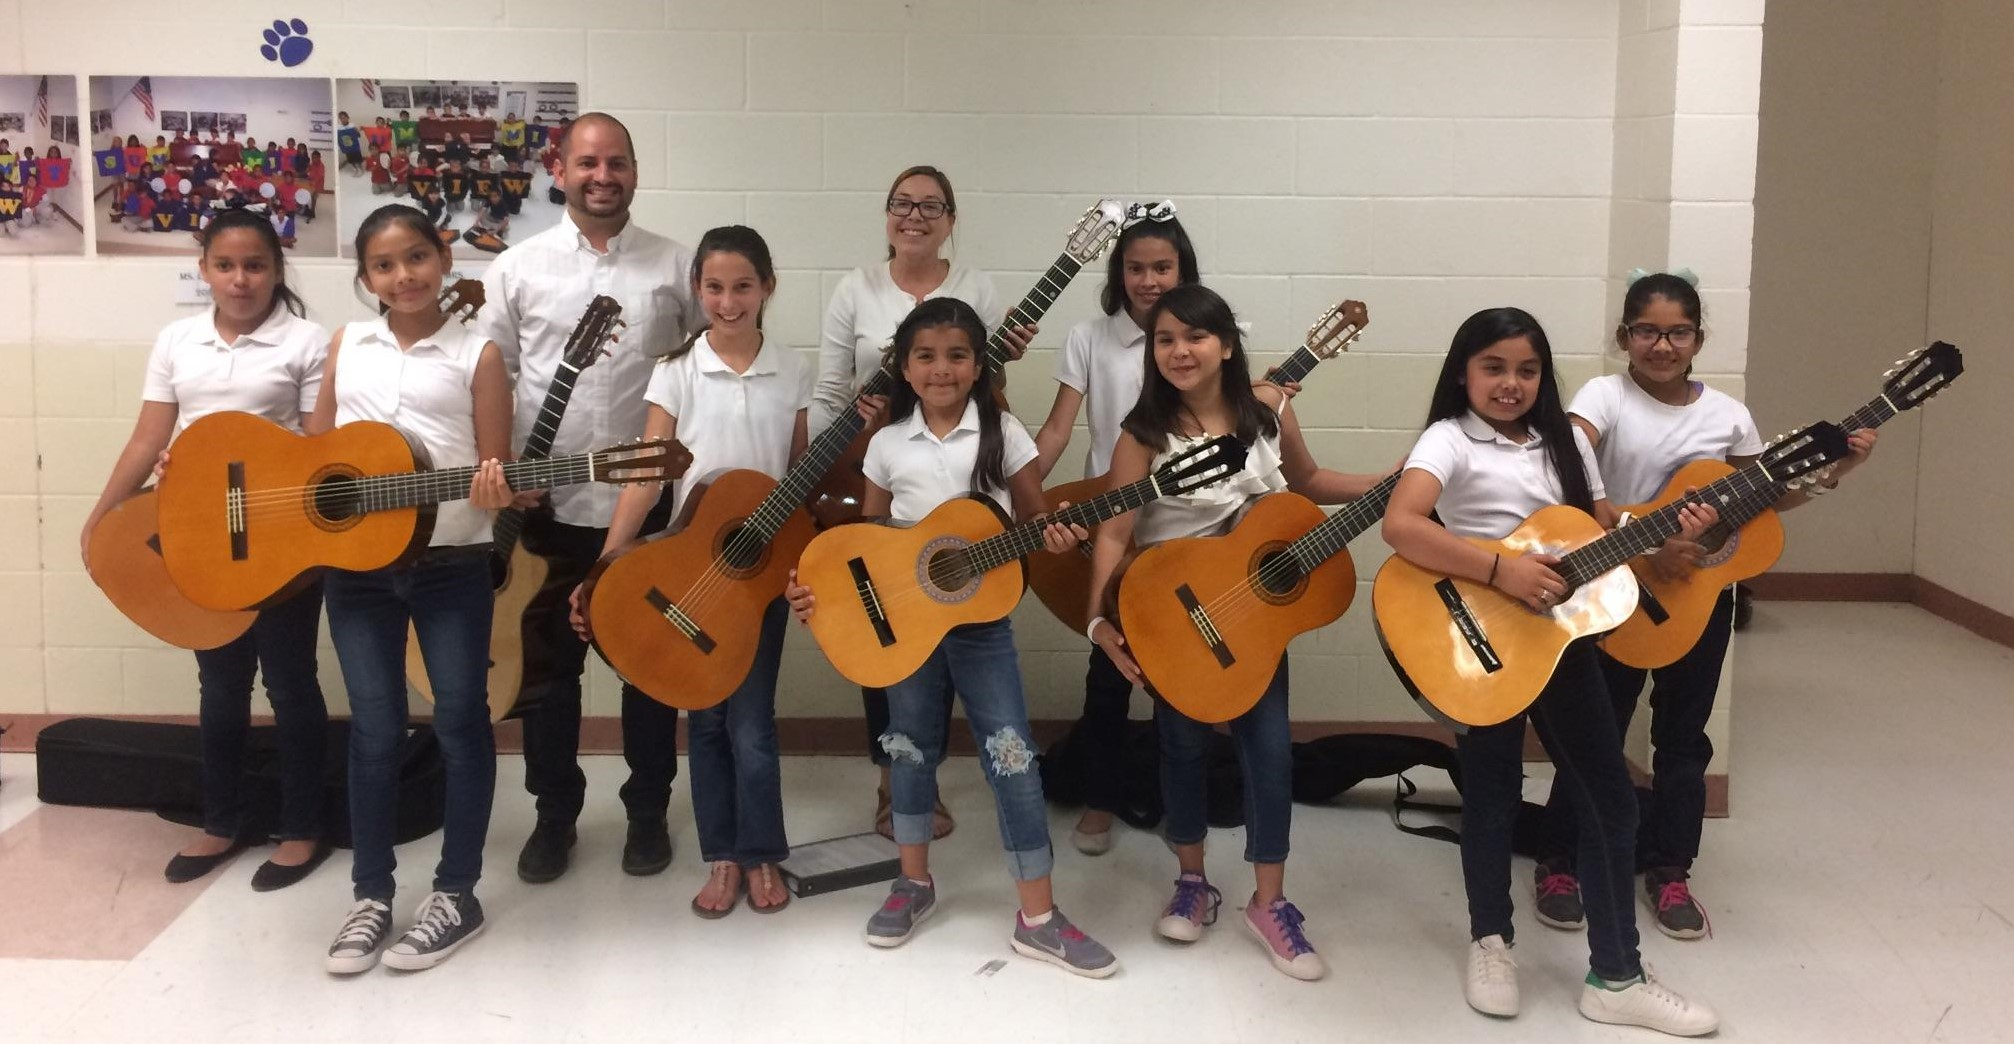 Lead Guitar elementary students get ready to go on stage holding guitars